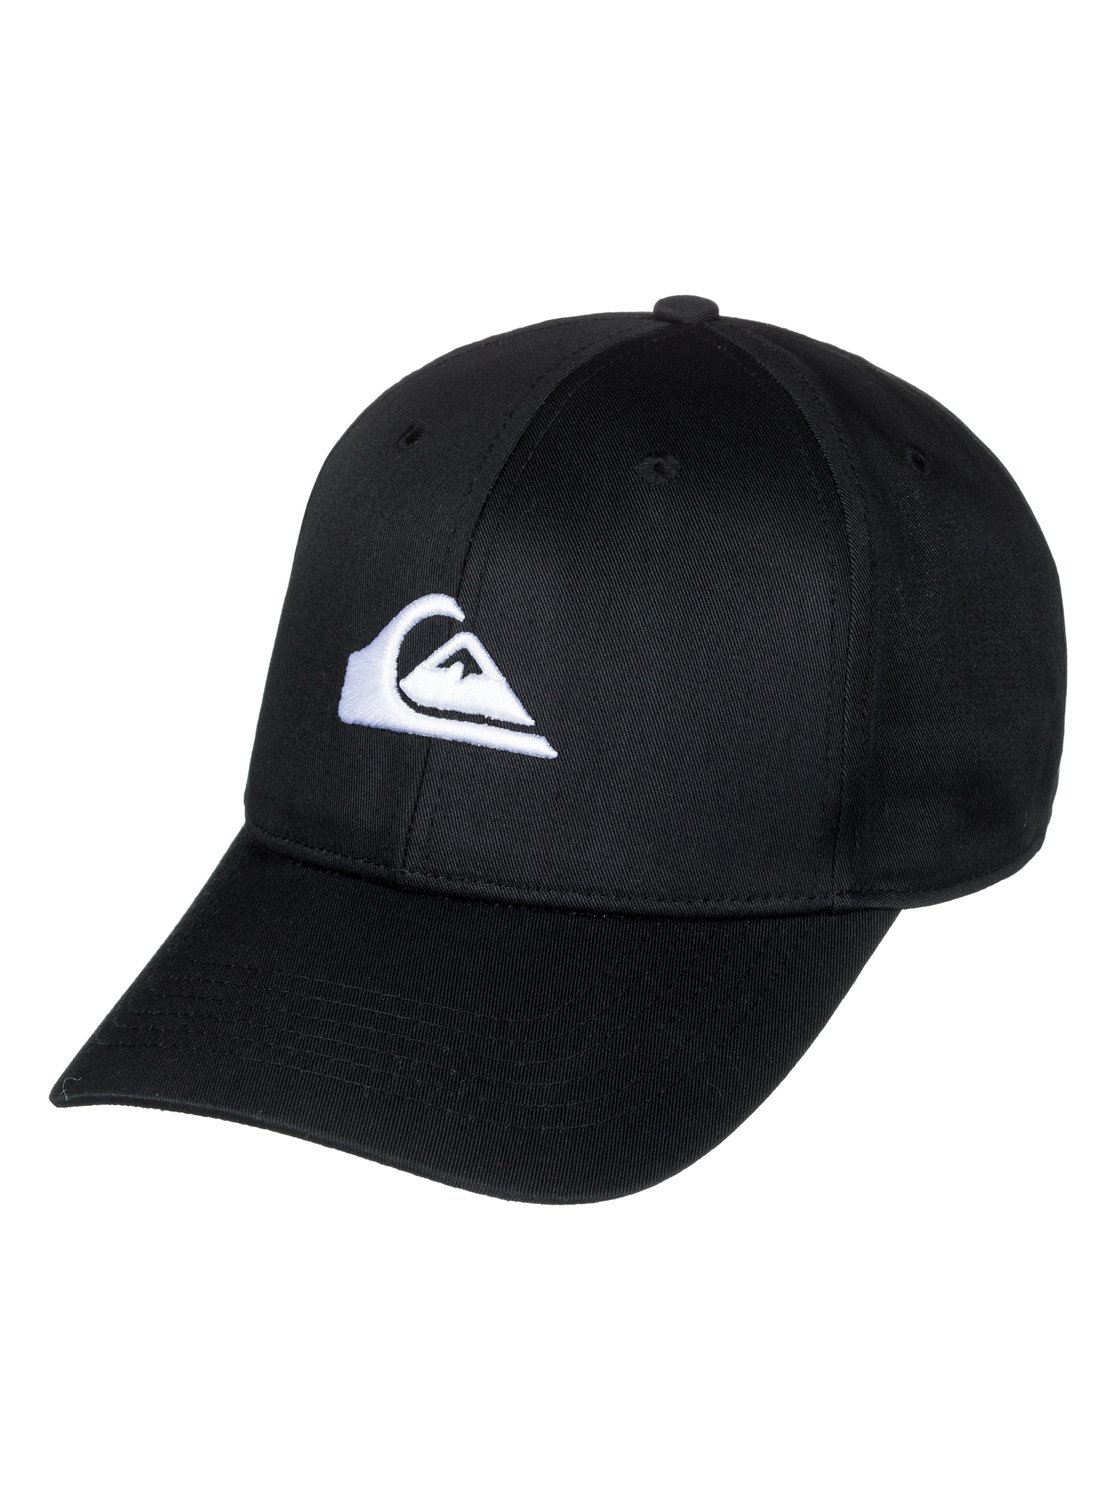 quiksilver snapback cap decades auf rechnung baur. Black Bedroom Furniture Sets. Home Design Ideas